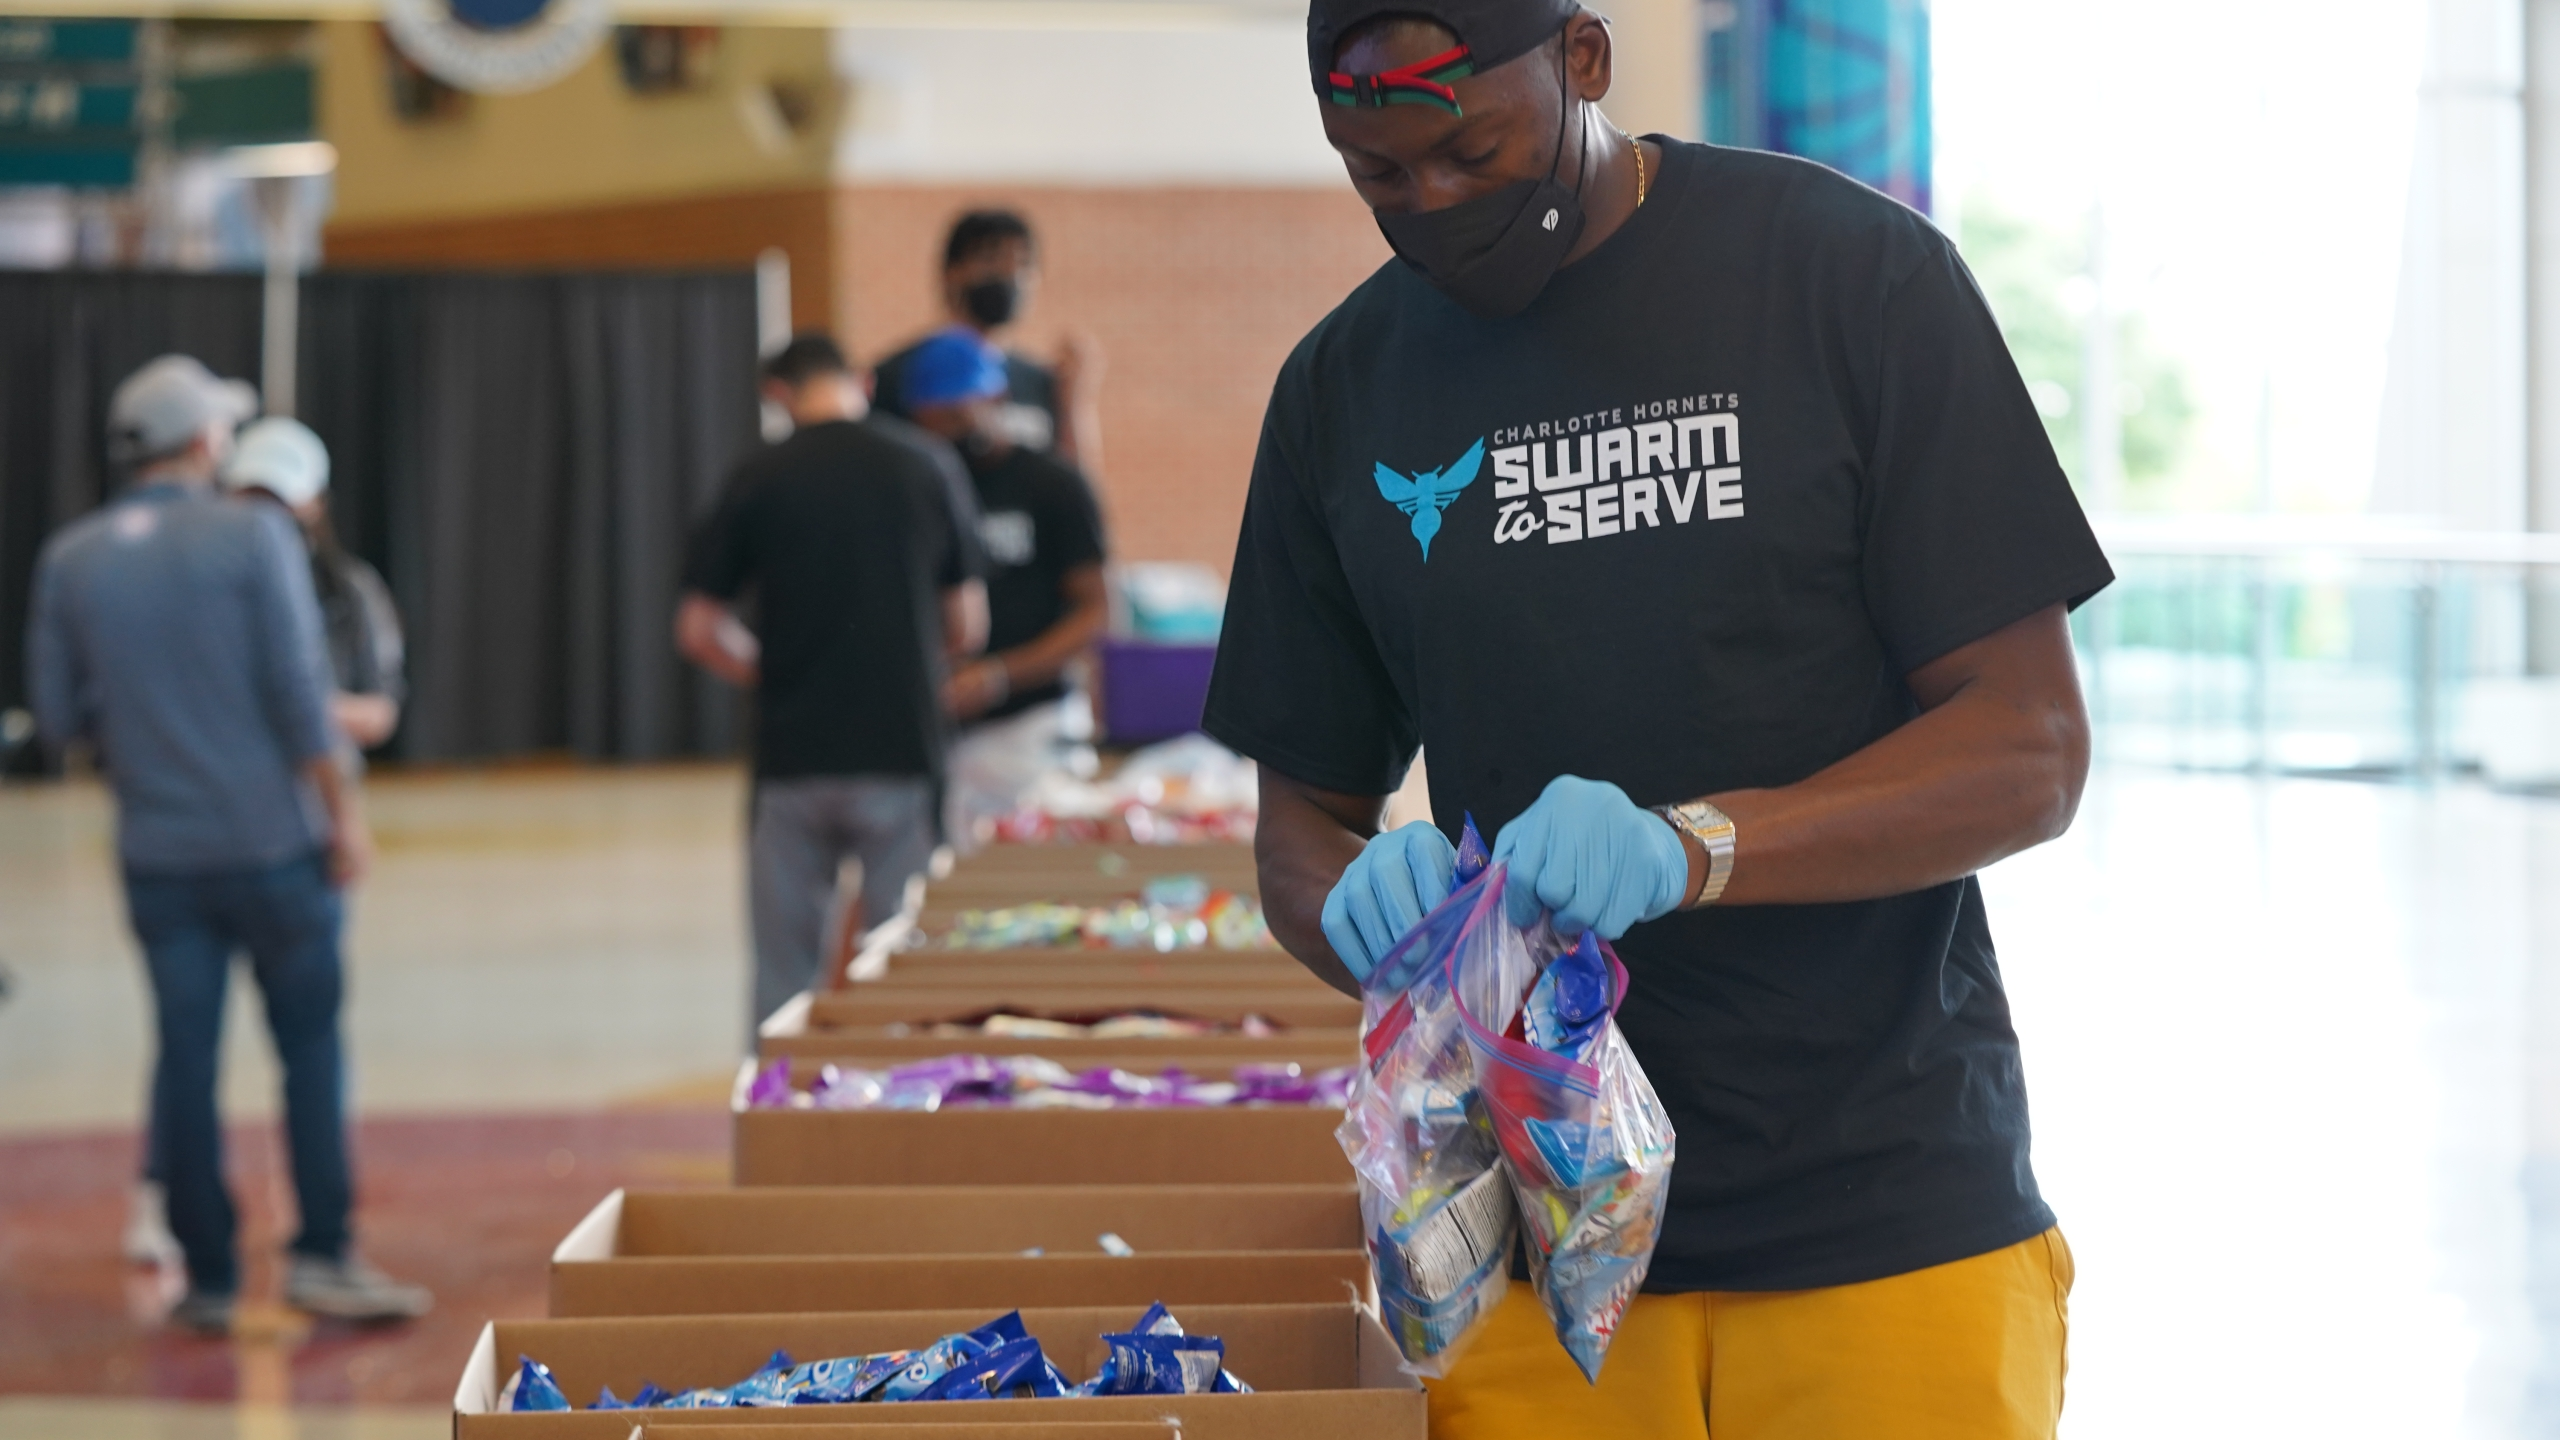 CHARLOTTE HORNETS AND BANK OF AMERICA PROVIDE 3,000 CARE KITS FOR U.S. TROOPS IN SEVENTH ANNUAL MILITARY CARE EVENT